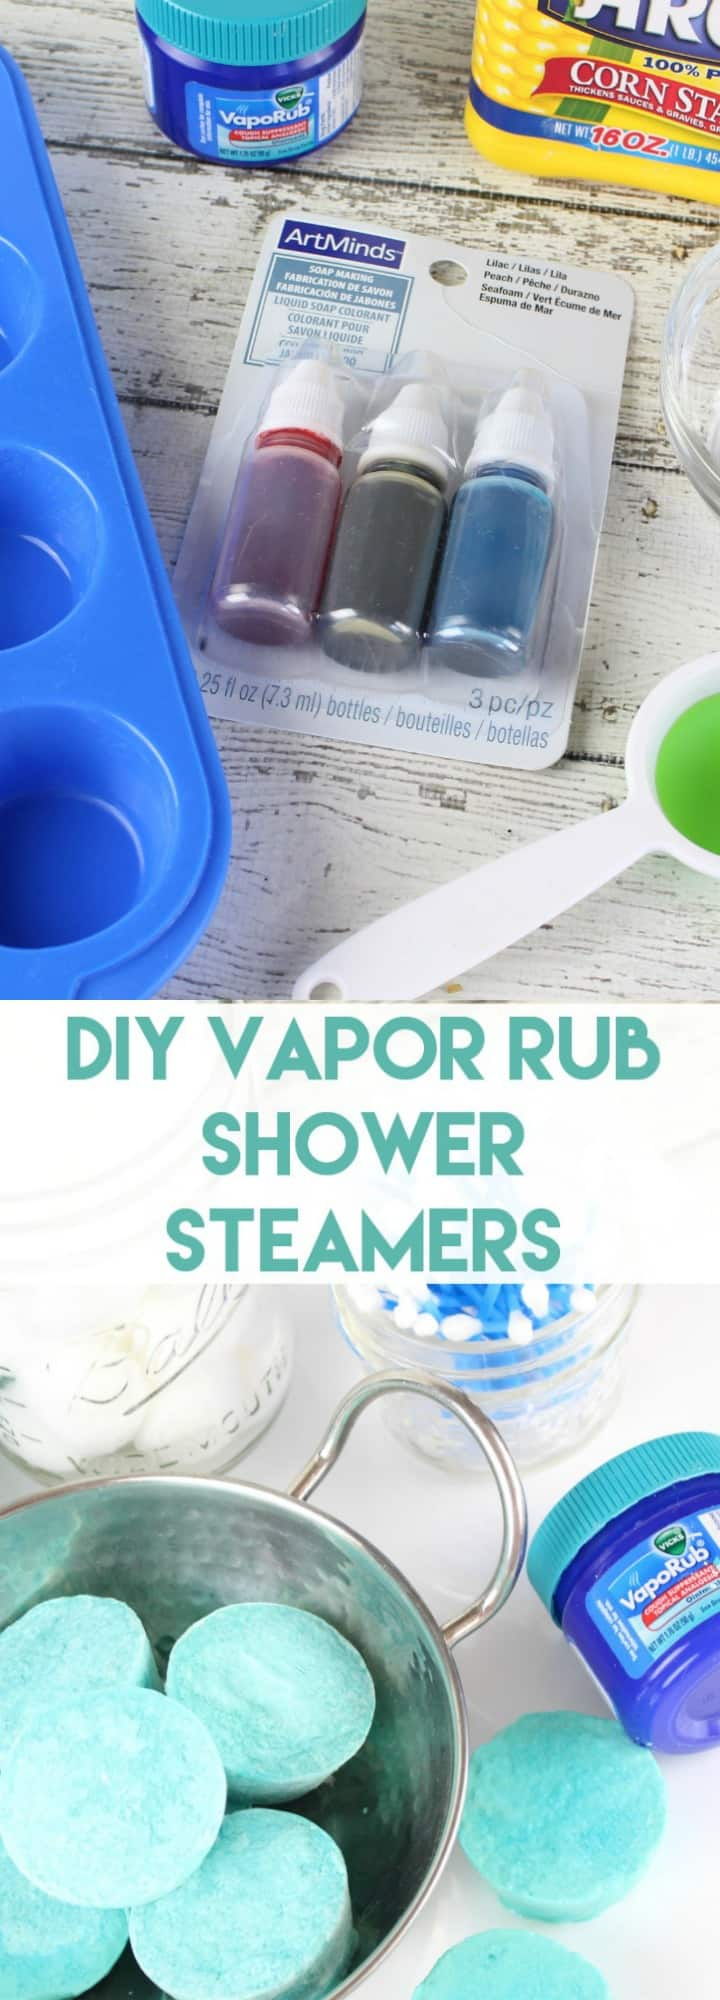 VapoRub shower steamers you can make at home - DIY shower steamers